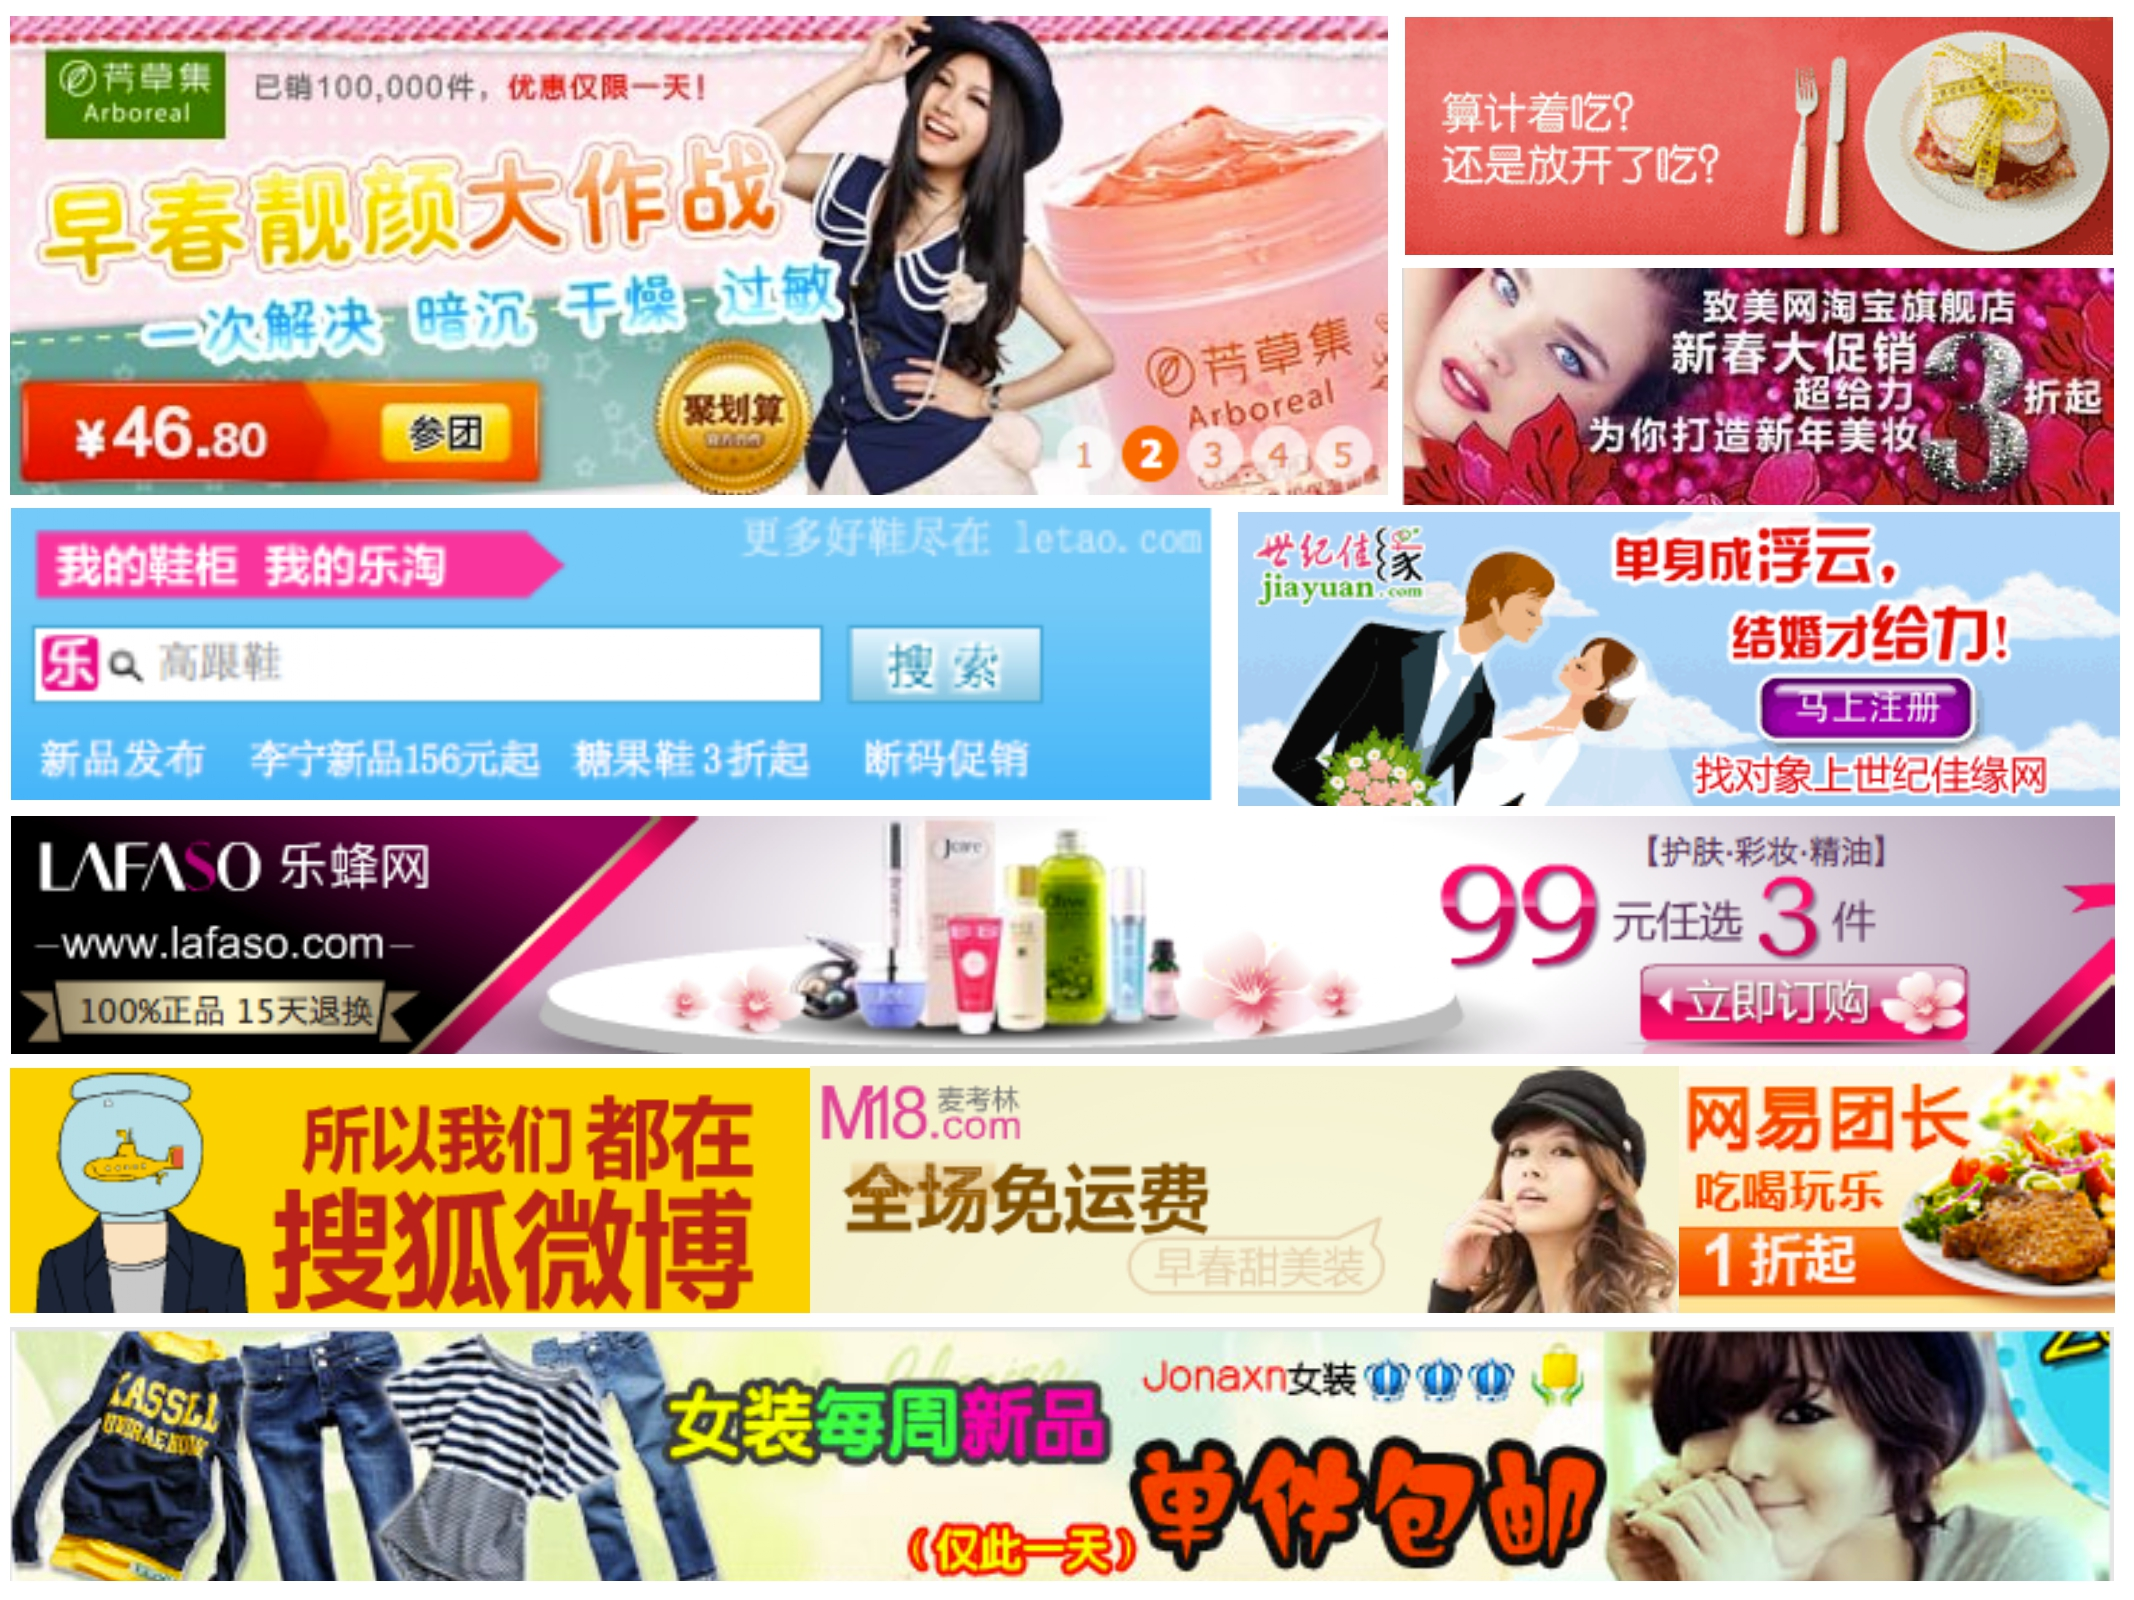 Chinese Web Design Patterns 2011_pages-to-jpg-0032.jpg